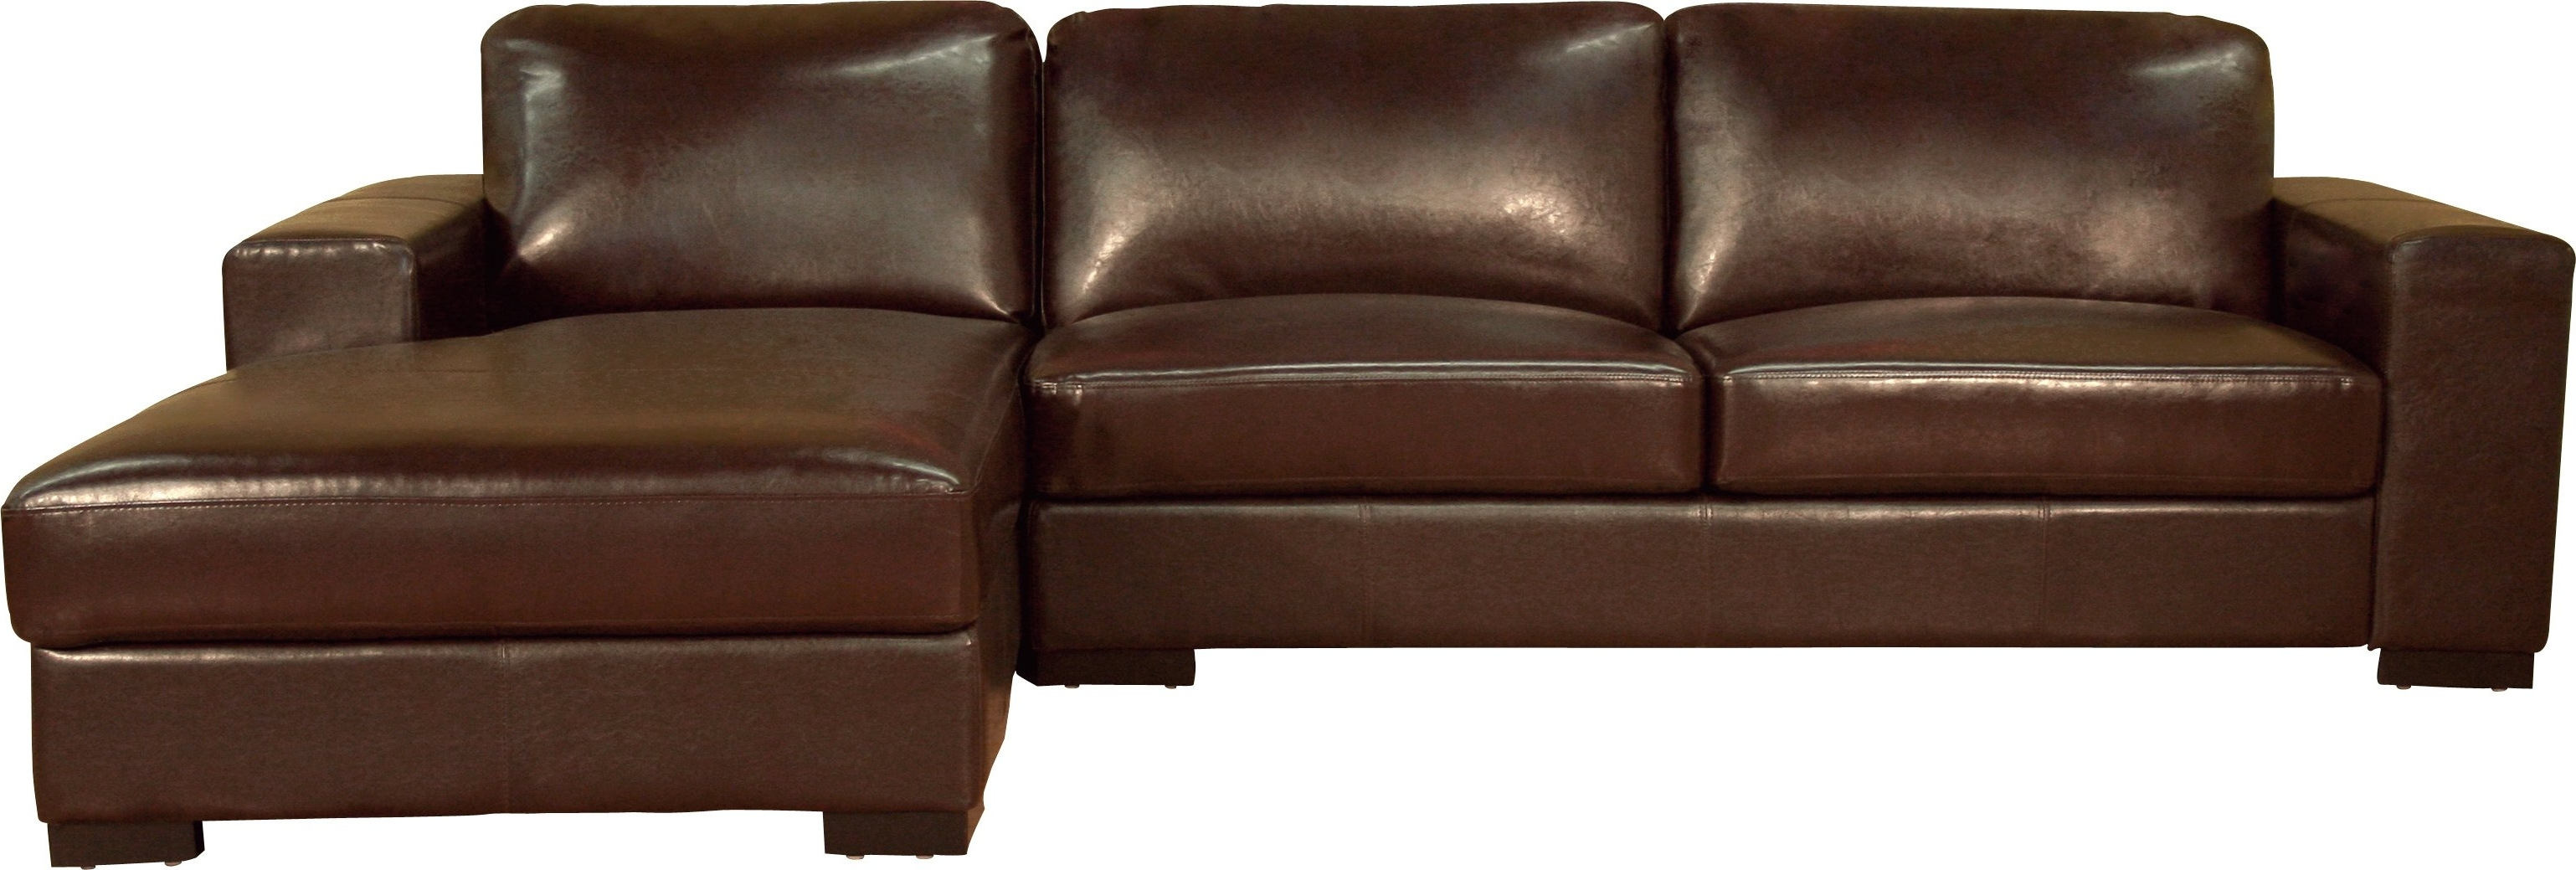 Leather Sofa Chaises Within Most Up To Date Popular Leather Sofa With Chaise Lounge With Brown Leather Sofa (View 11 of 15)